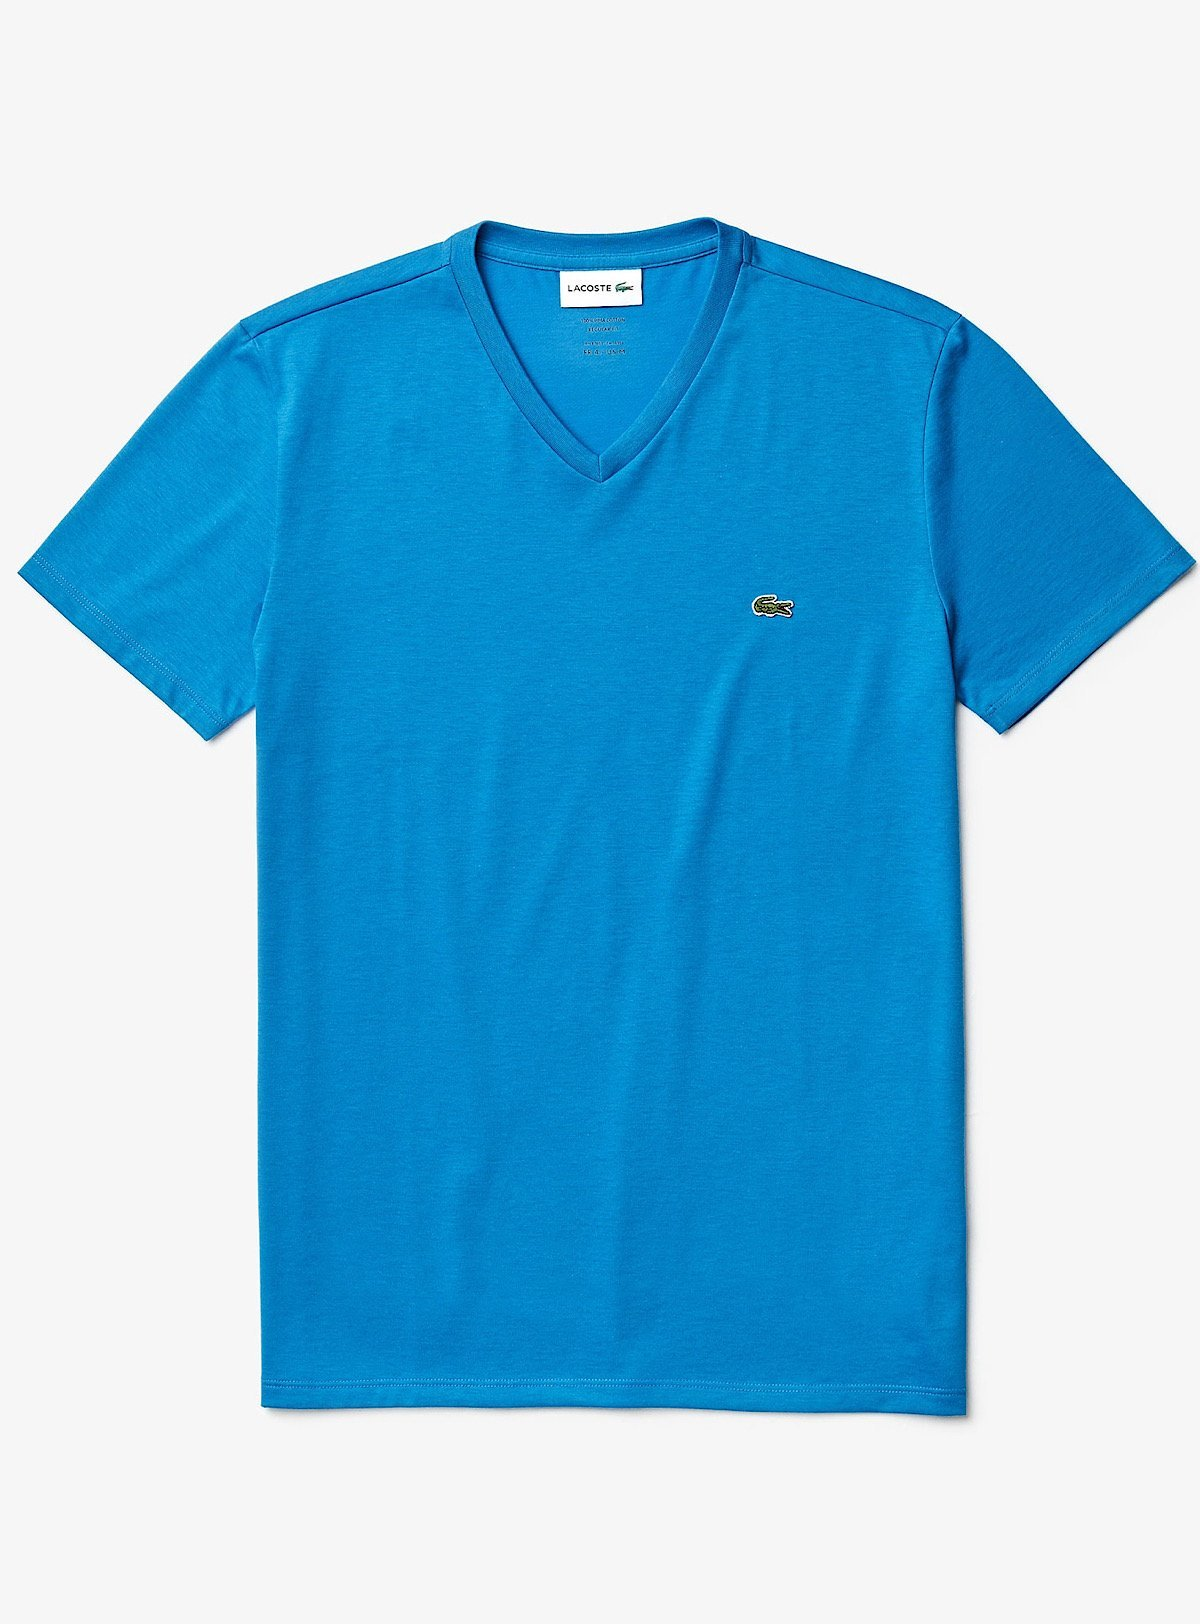 Lacoste T-Shirt - V-Neck - Blue L61 - TH6710